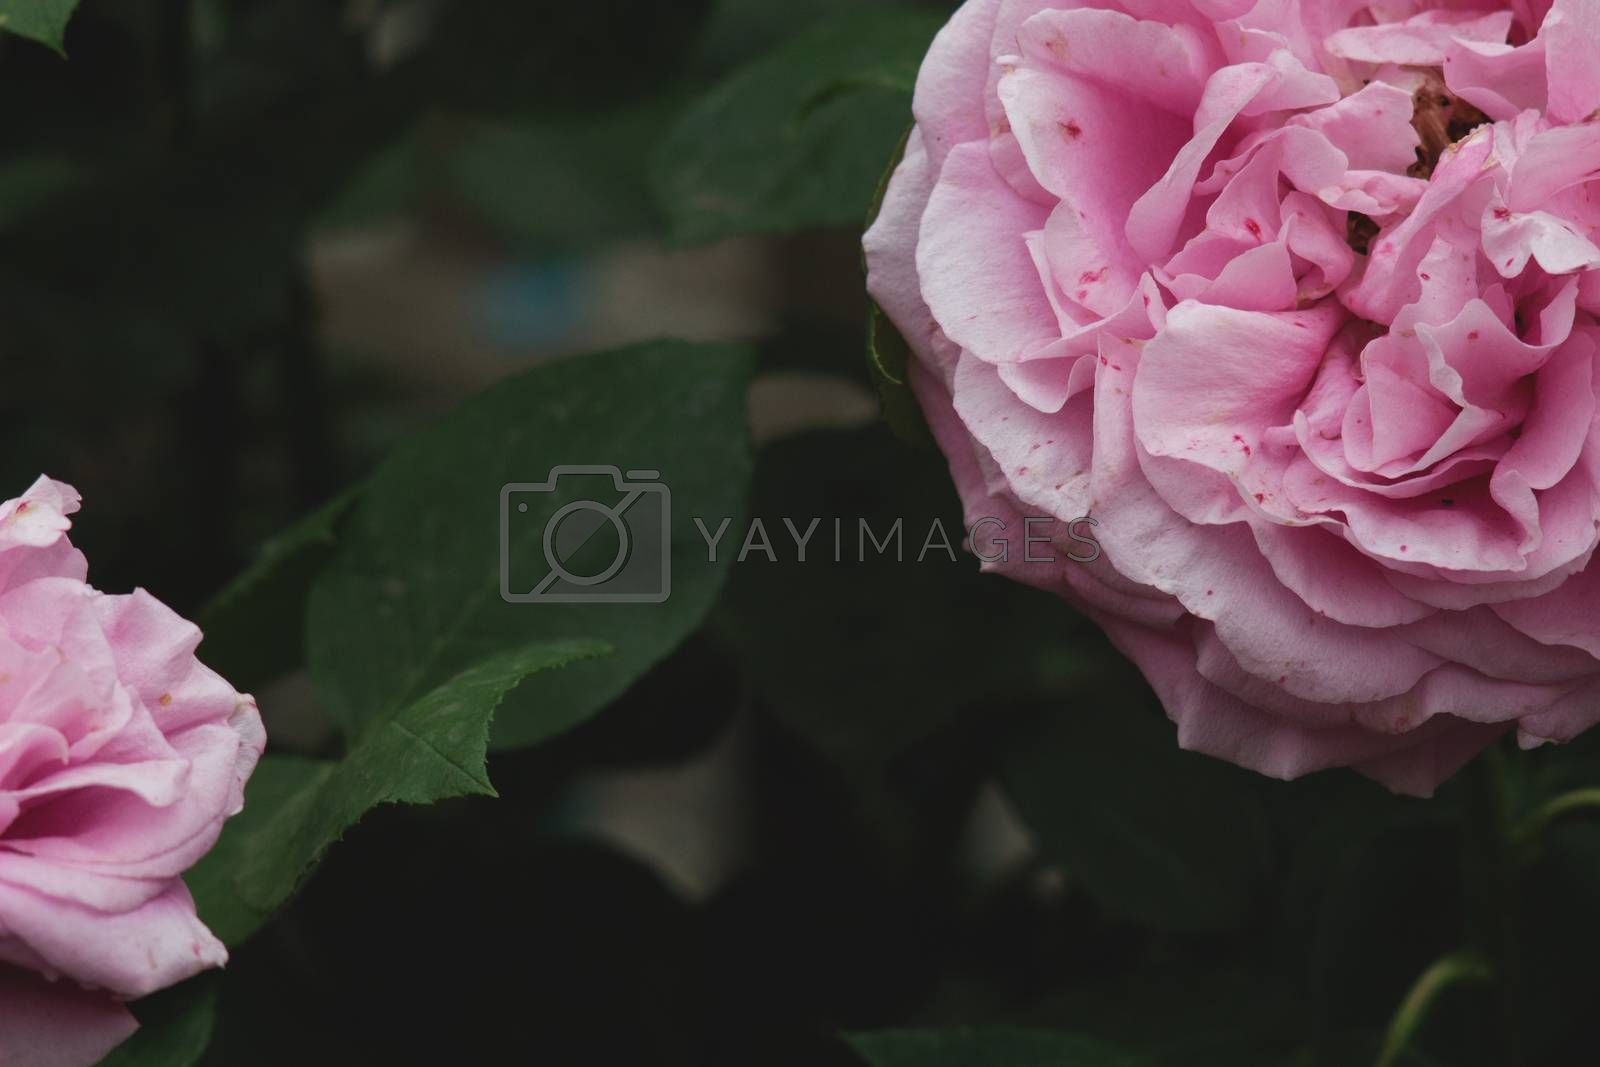 Two peony rose on the background of deep dark green leaves